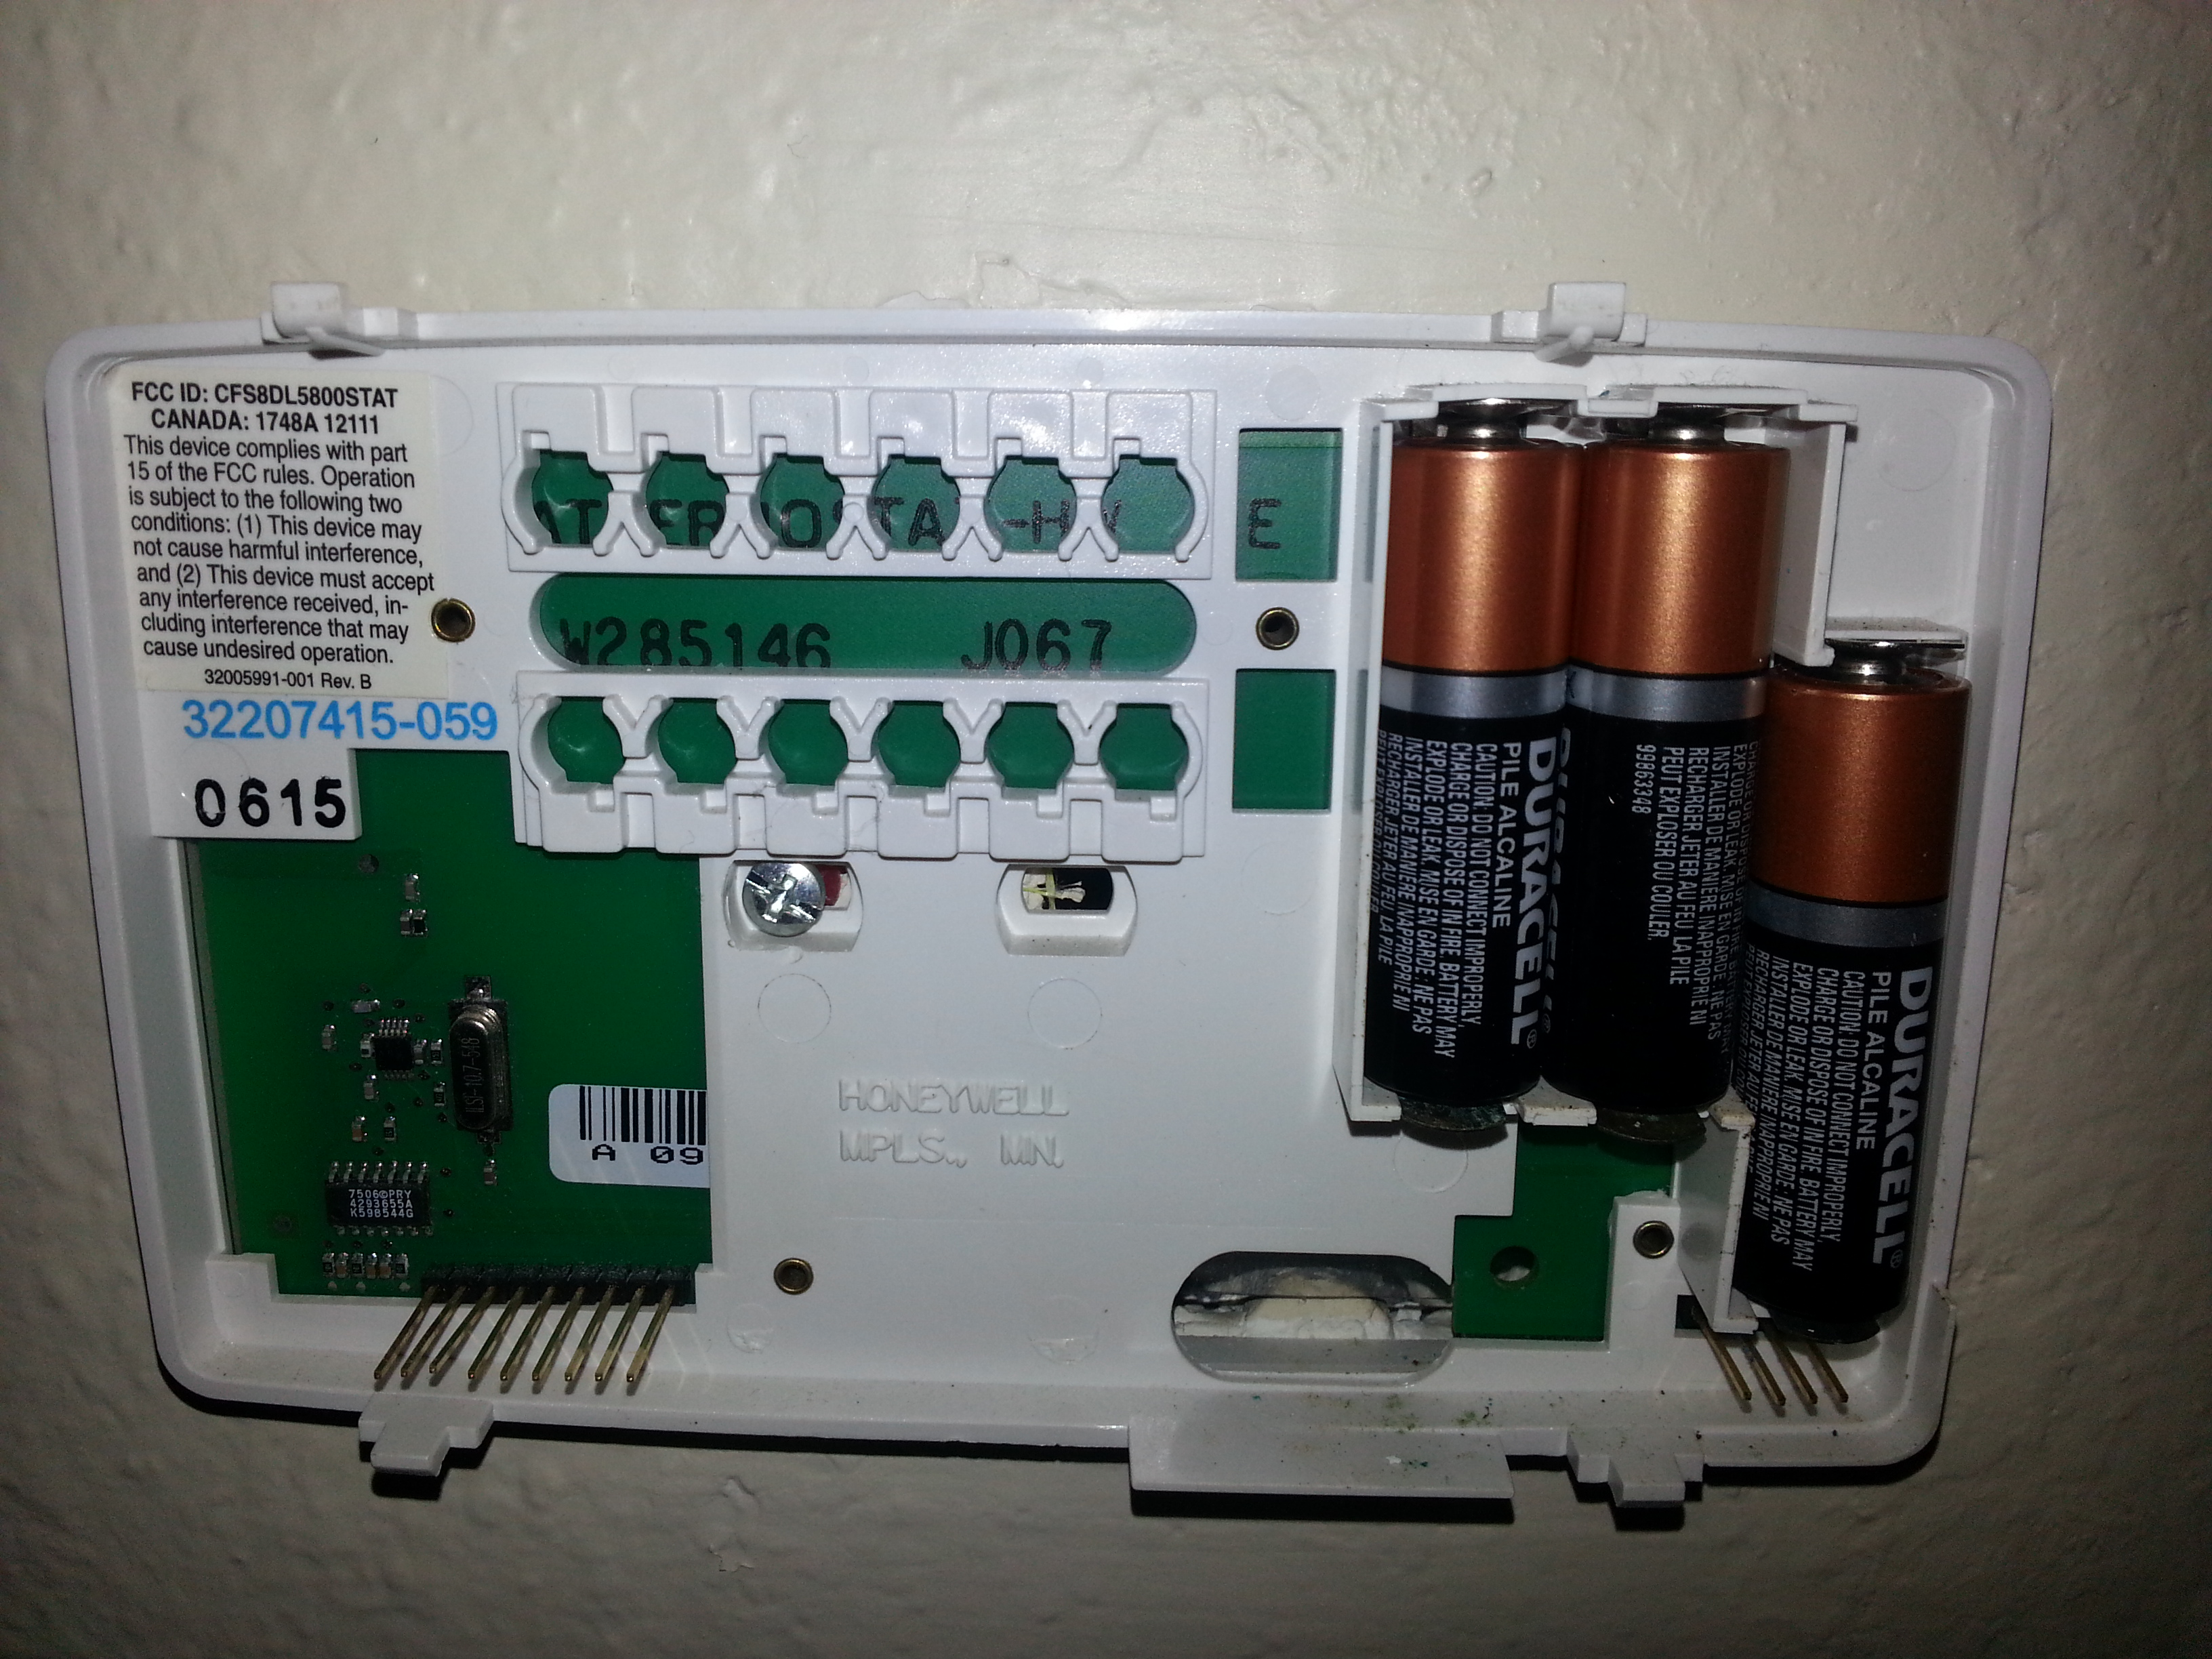 my honeywell thermostat chronotherm iv plus is not turning on my rh  justanswer com Honeywell Thermostat Installation Manual Honeywell  Chronotherm IV ...